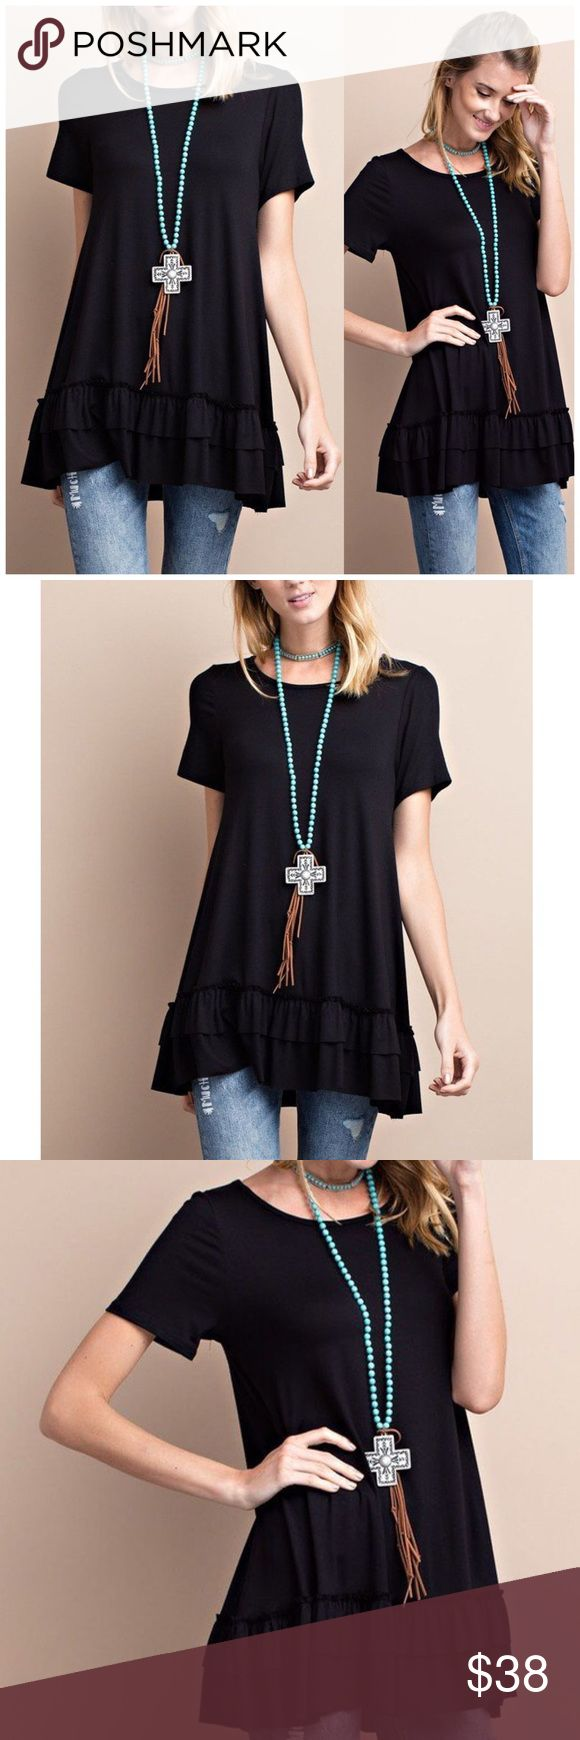 Black Short Sleeve Double Ruffle Tunic Short sleeves round neck. Soft heavy rayon/ spandex material. Loos fit flow tunic with double ruffle. 95% rayon, 5% spandex. Fits true to size B Chic Boutique Tops Tunics